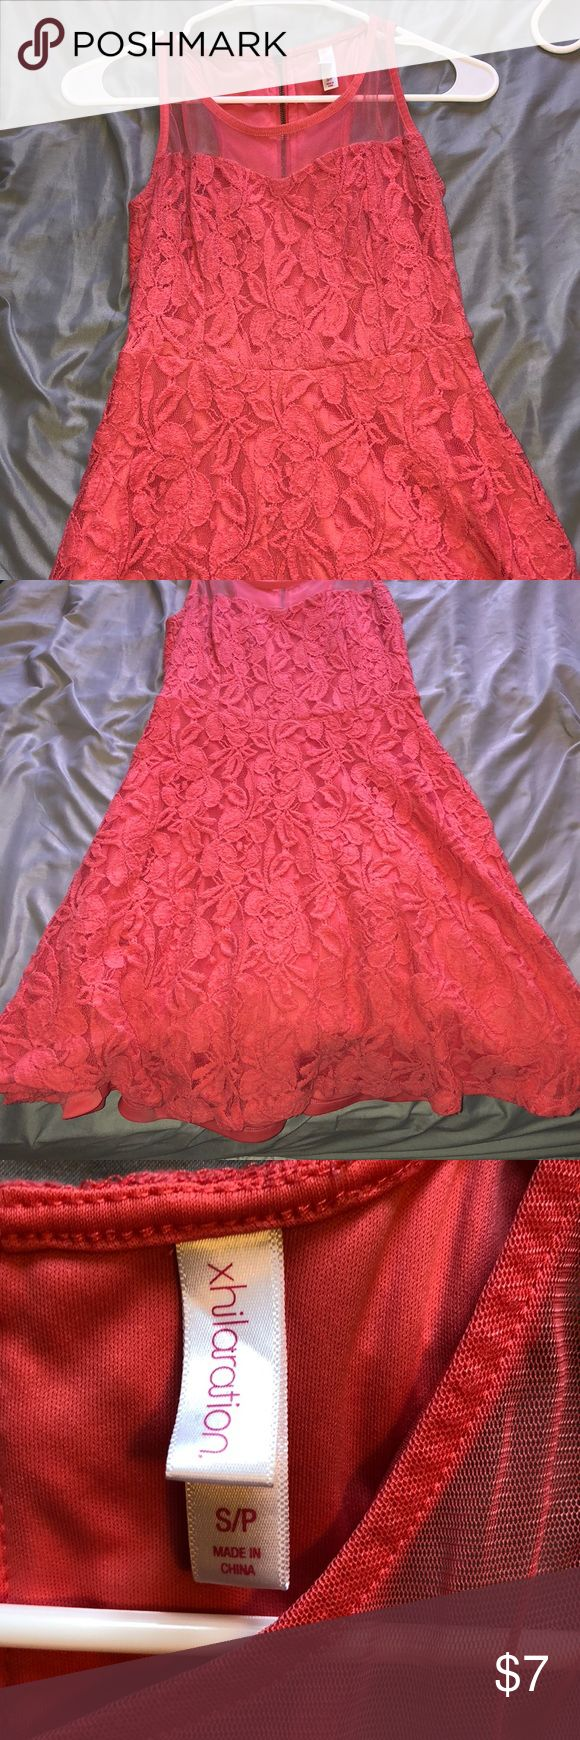 Neon pink dress Worn once:) great condition Dresses